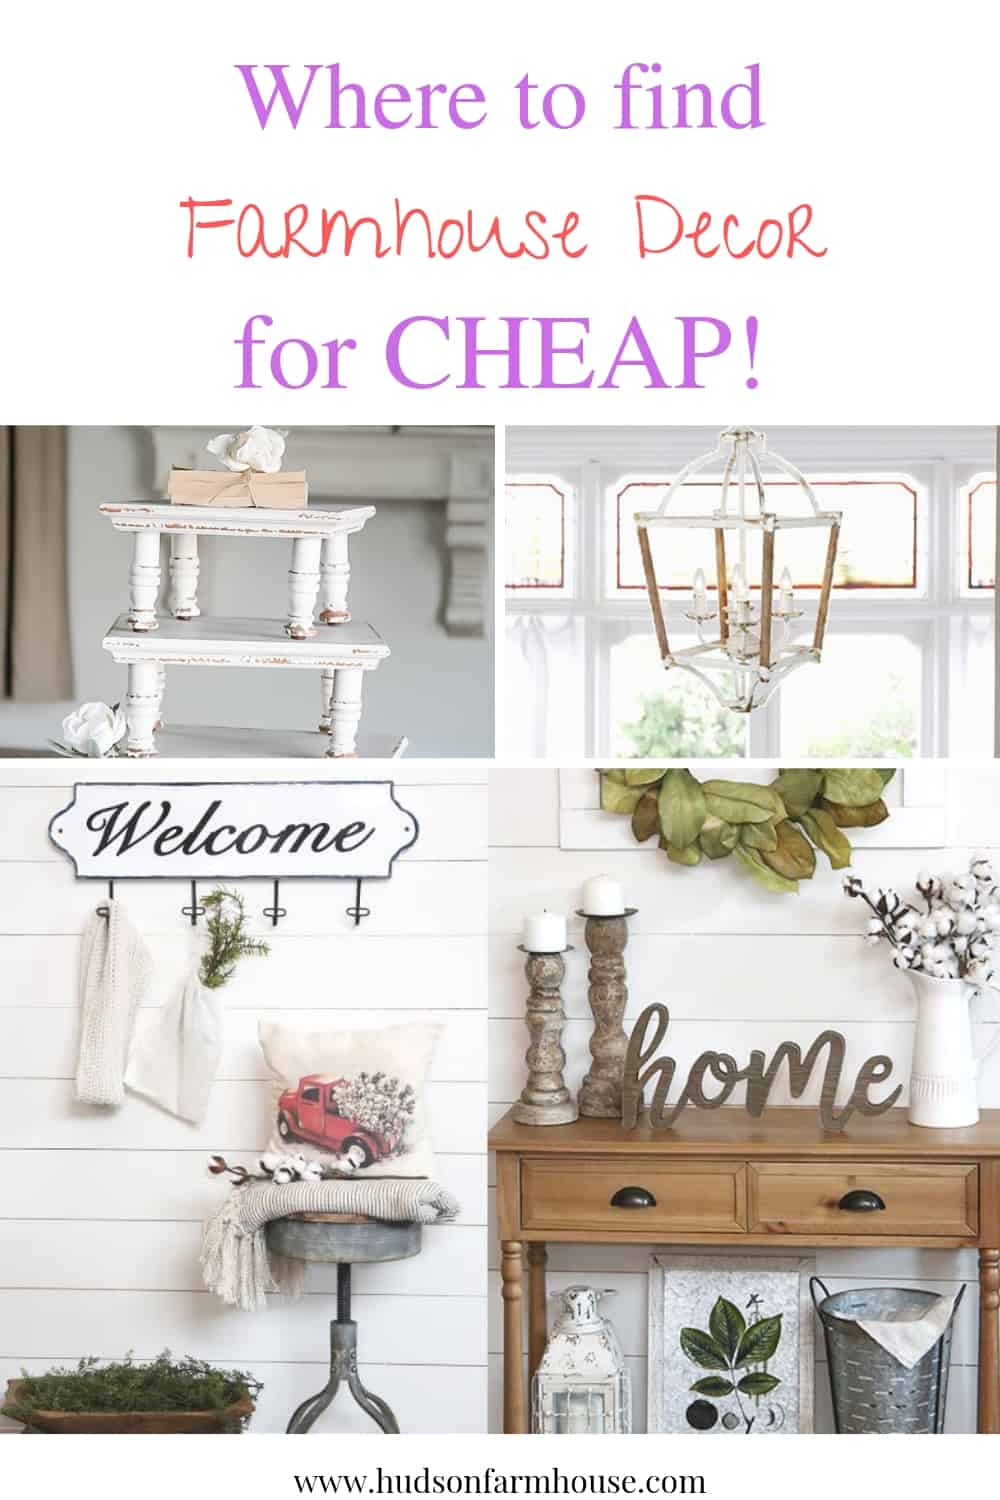 Where To Find Farmhouse Decor For Cheap